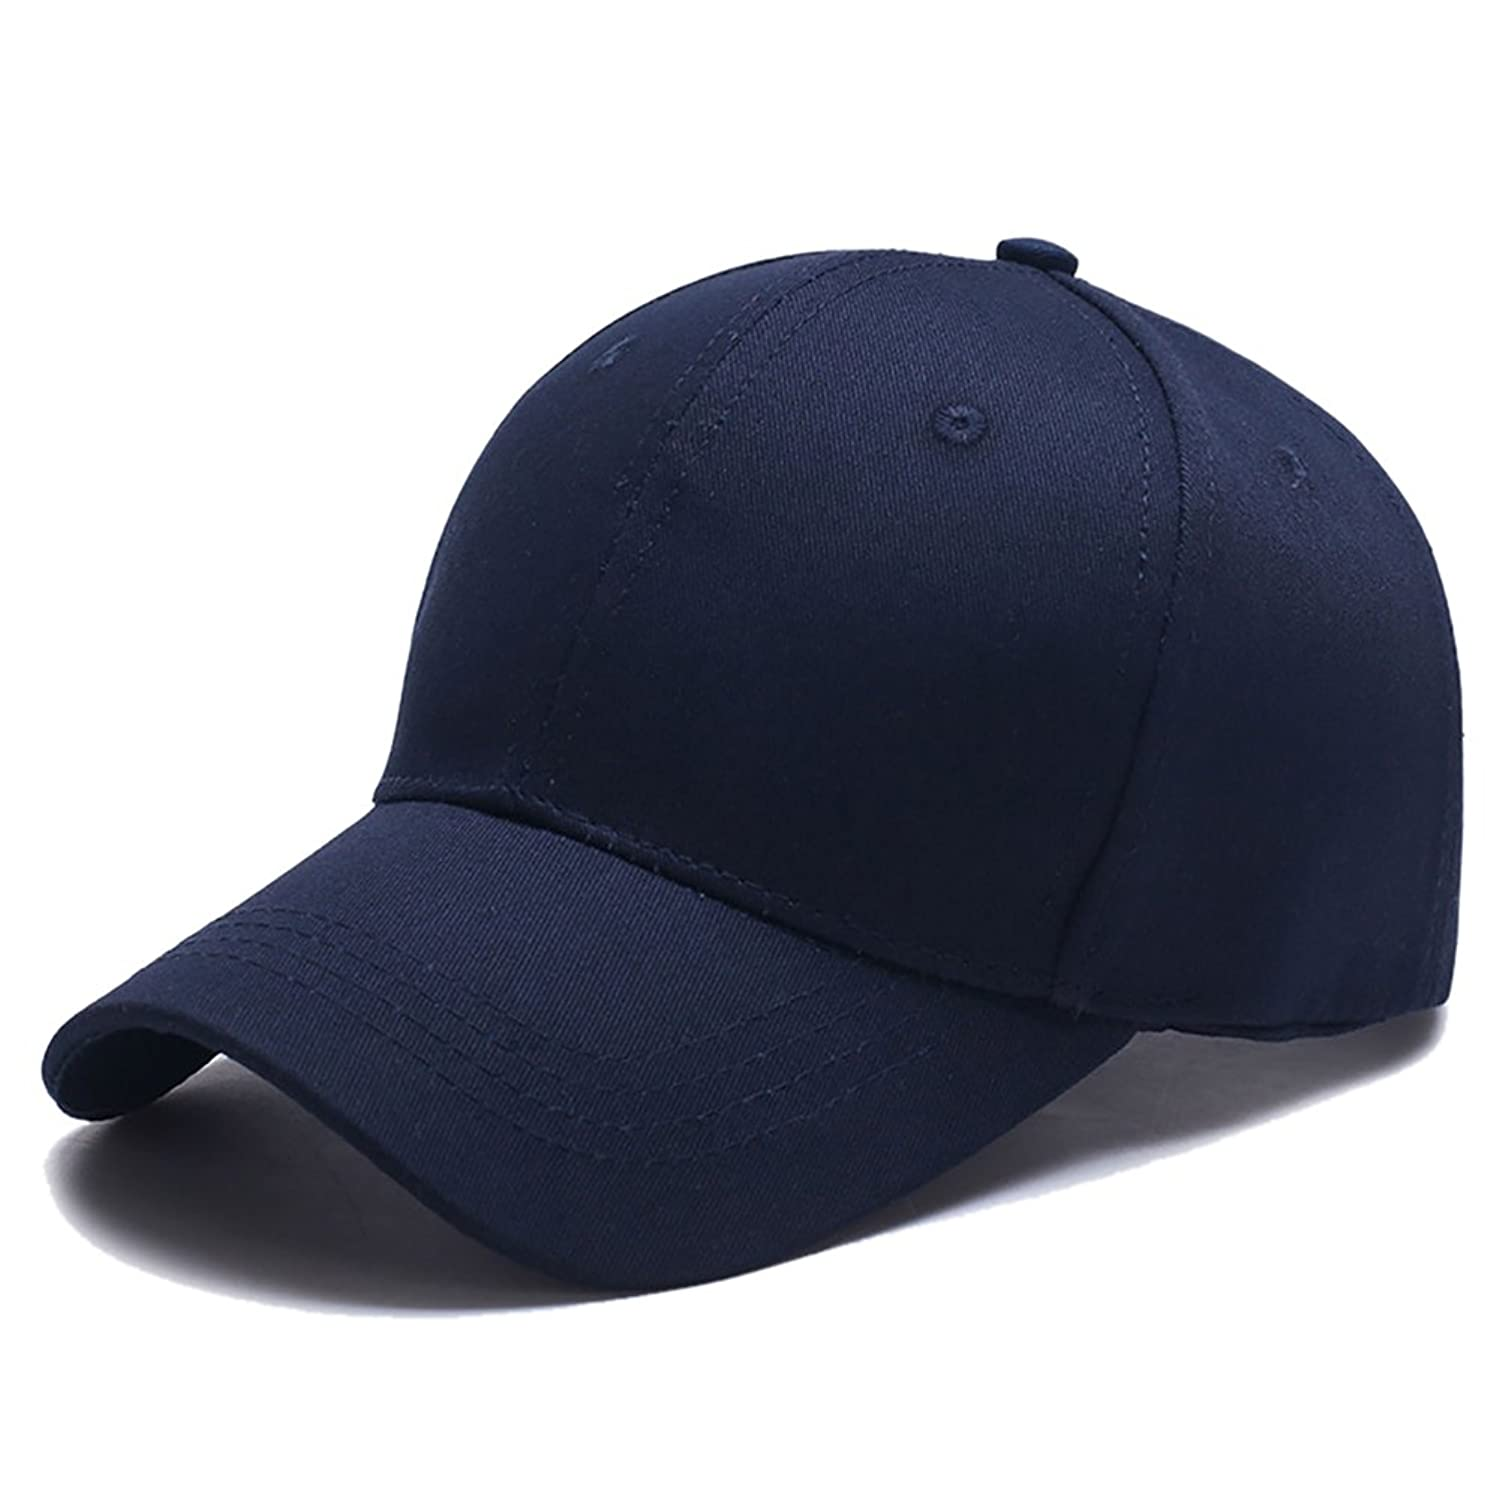 c2784401a70 Yidarton Baseball Cap Polo Style Classic Sports Casual Plain Sun Hat